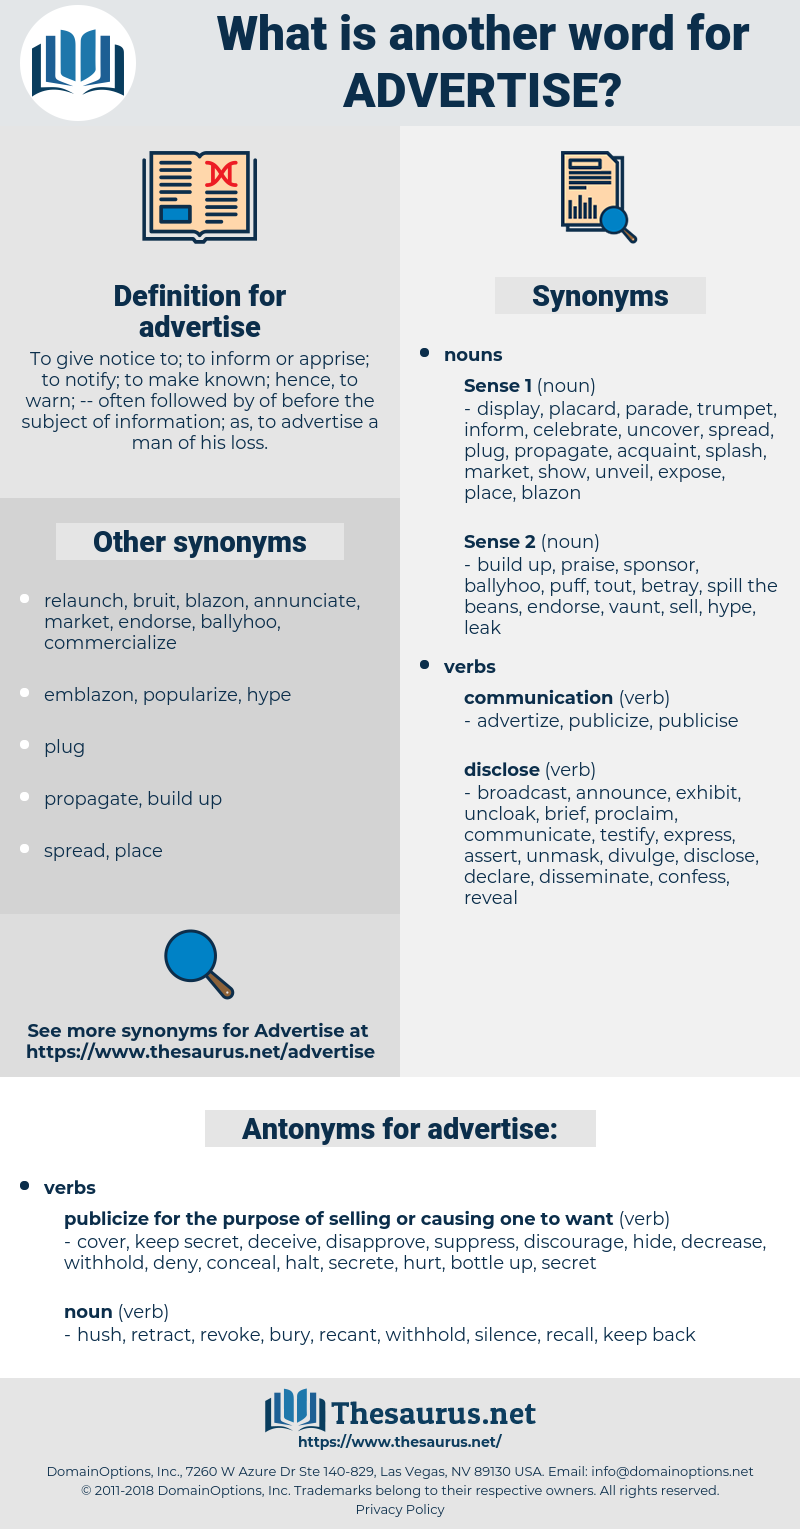 advertise, synonym advertise, another word for advertise, words like advertise, thesaurus advertise